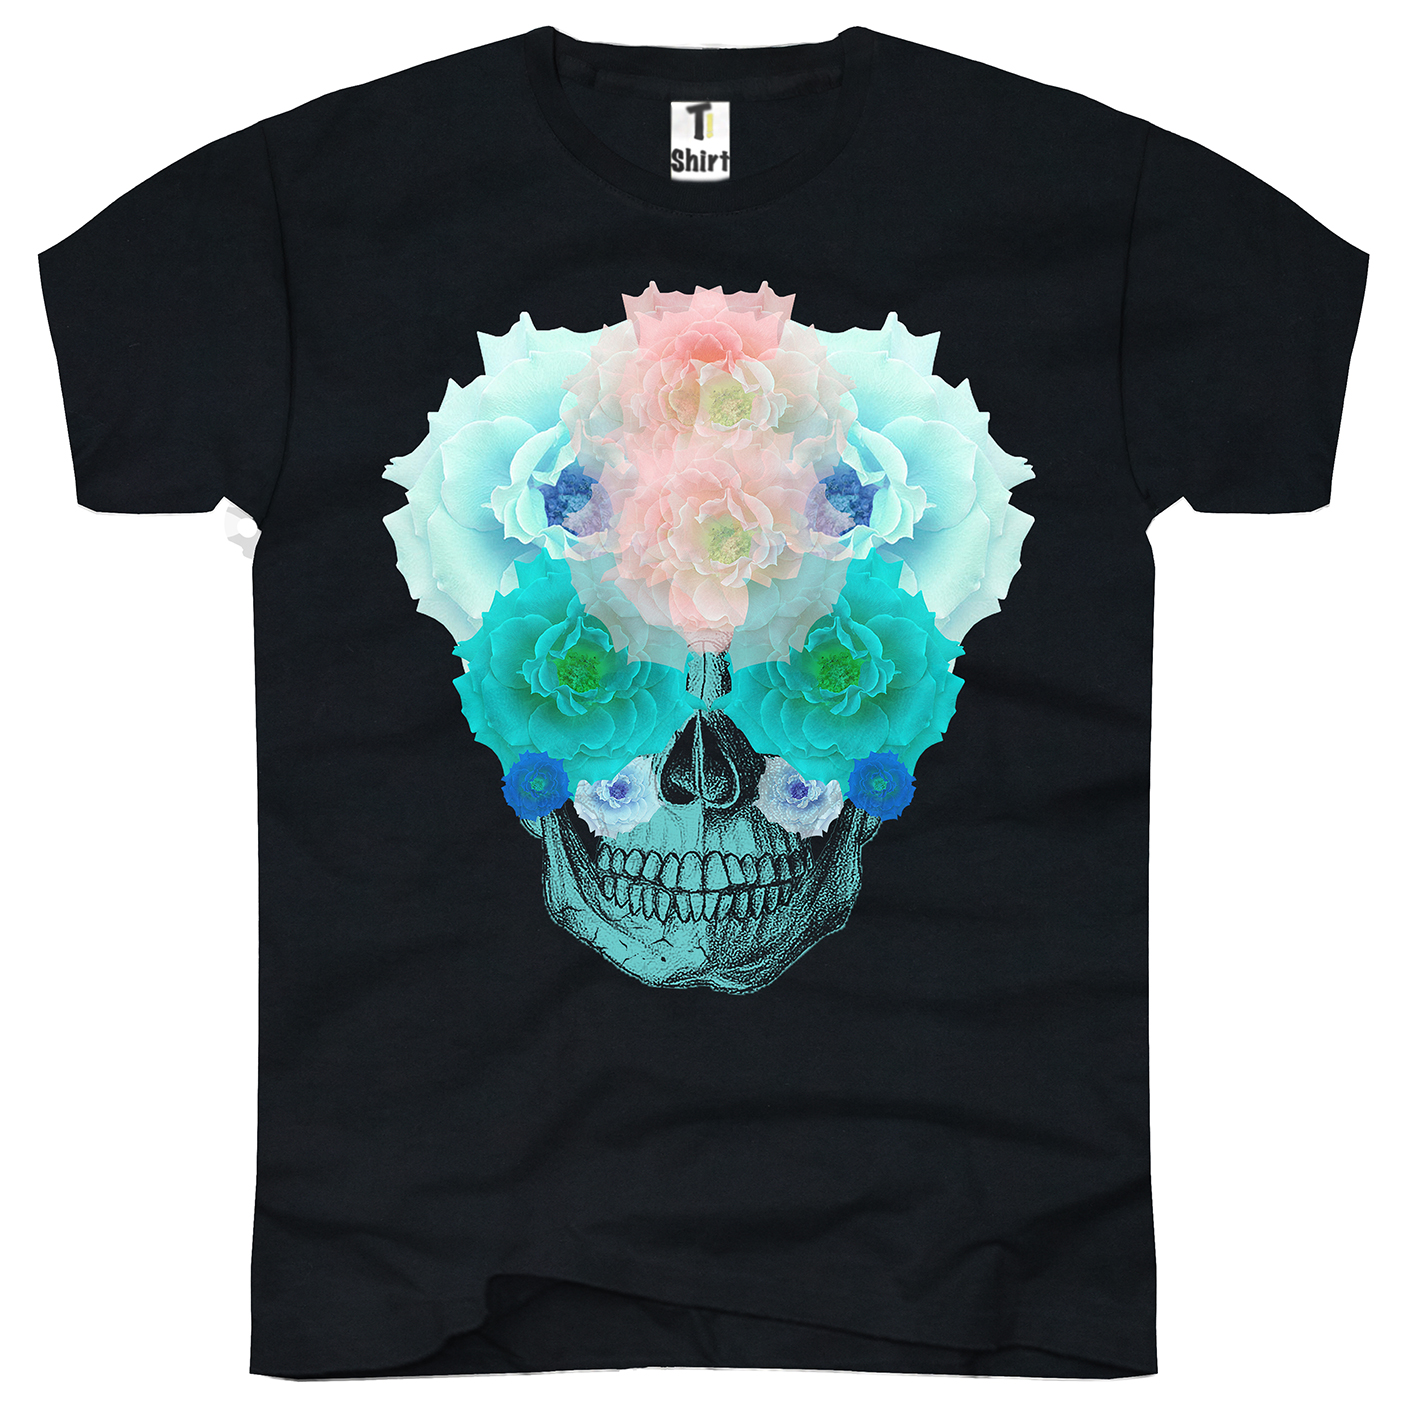 blumen totenkopf t shirts shirts und tops f mit exklusiven motiven. Black Bedroom Furniture Sets. Home Design Ideas